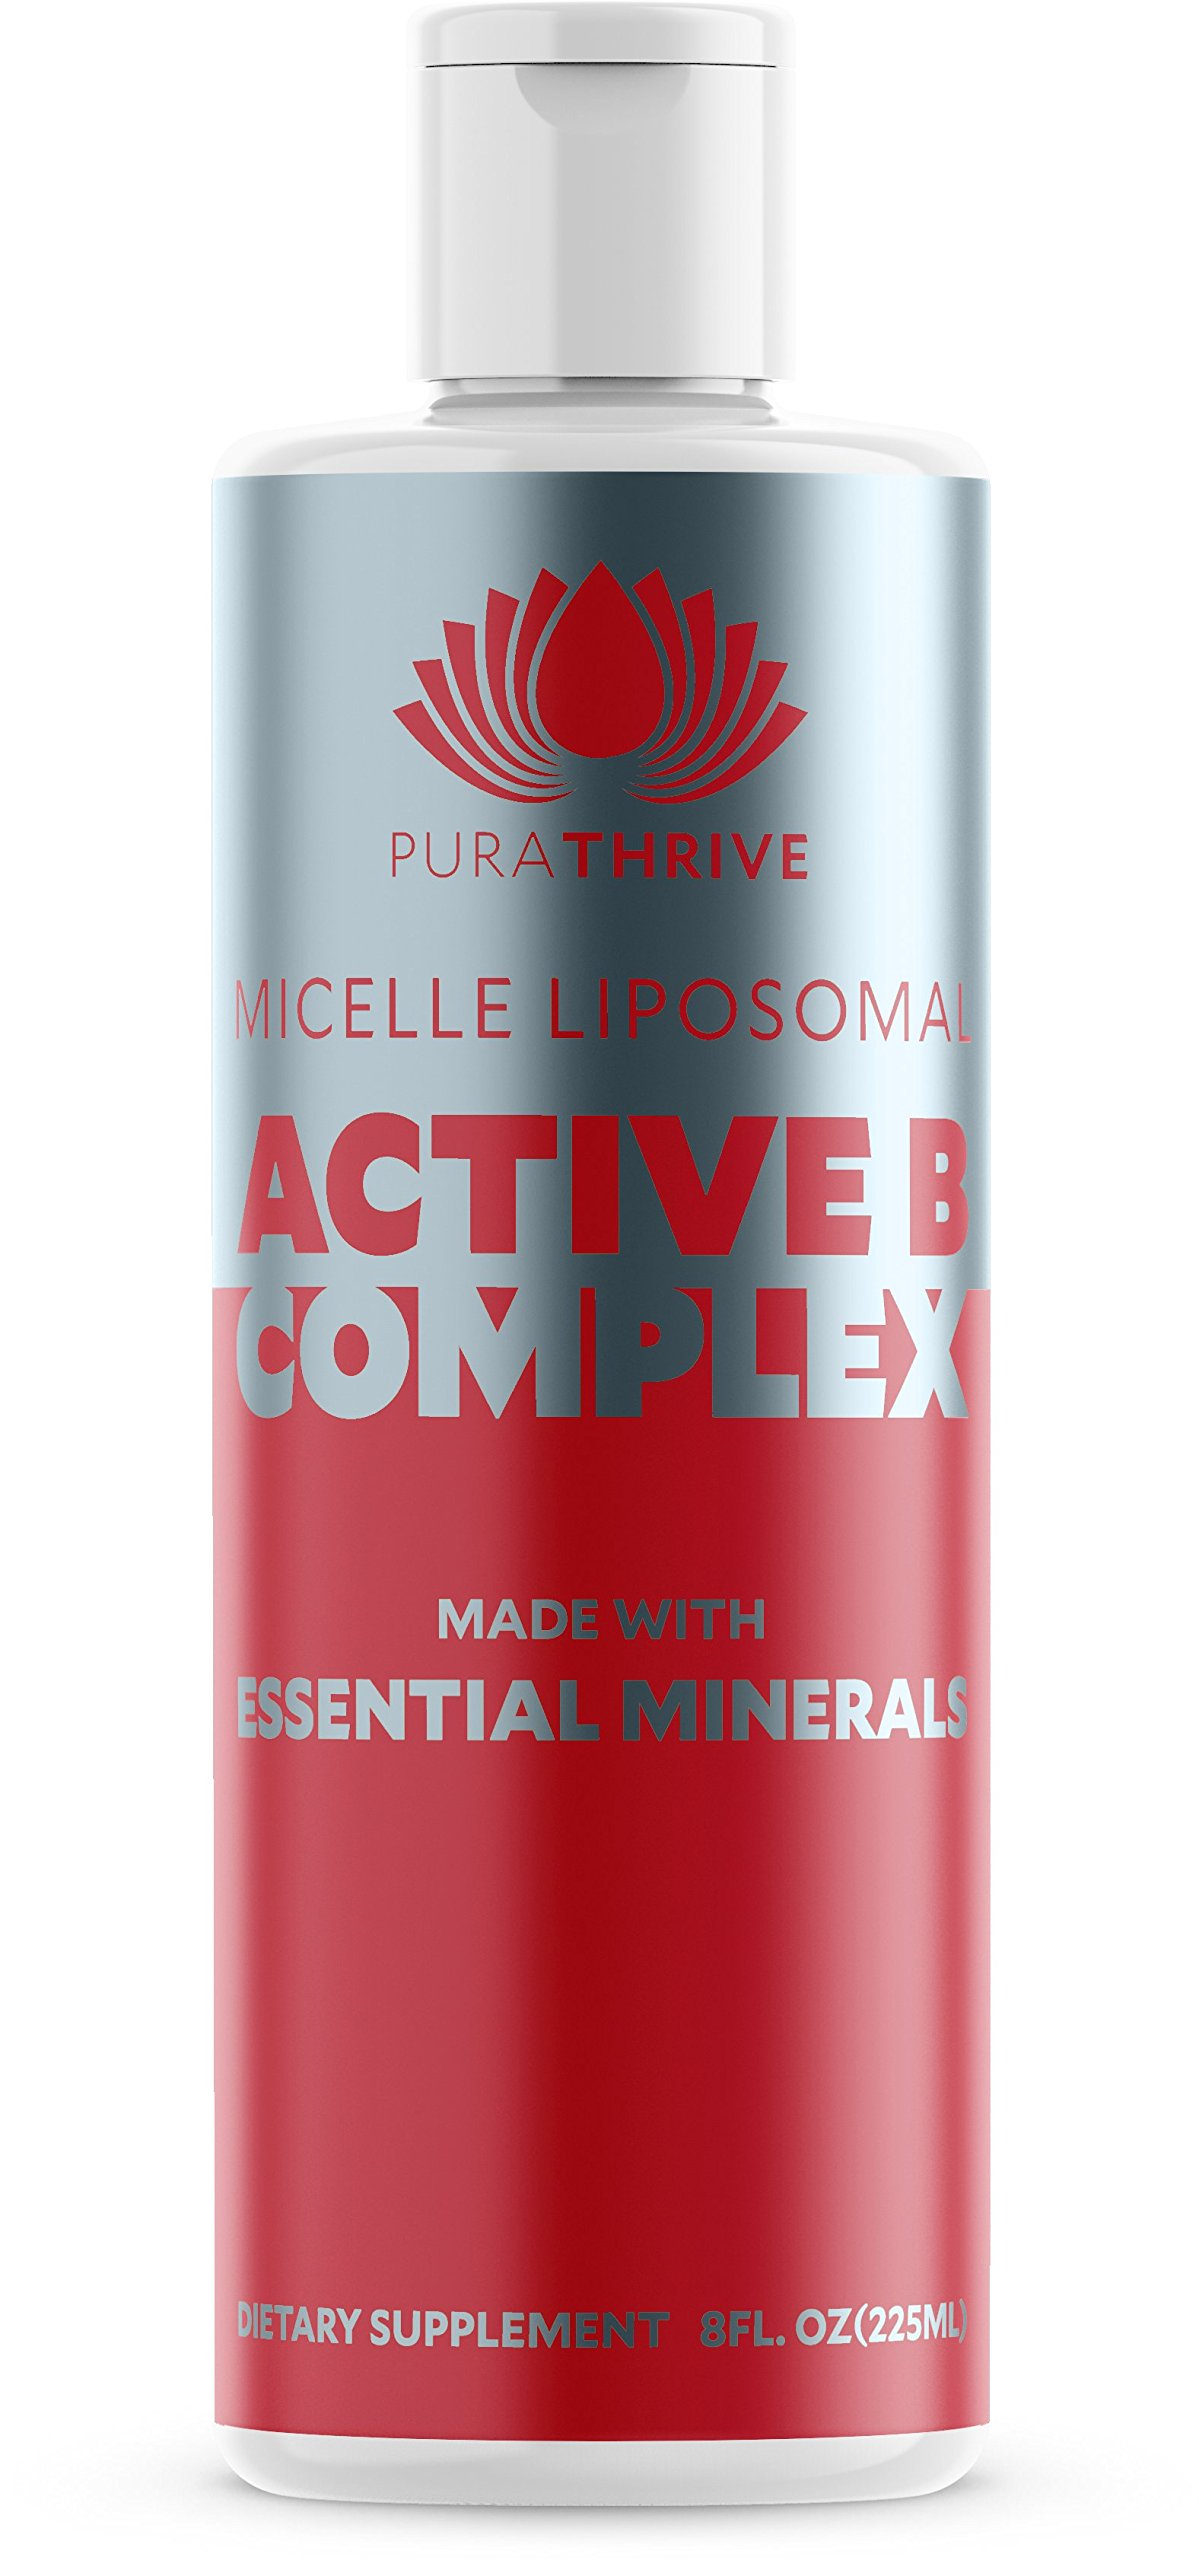 PuraTHRIVE Vitamin B Complex - Micelle Liposomal Active B-Complex 8 oz Liquid by Purathrive. Active-B Contains Nine Essential Minerals & Electrolytes to Further Support Wellbeing & Performance.